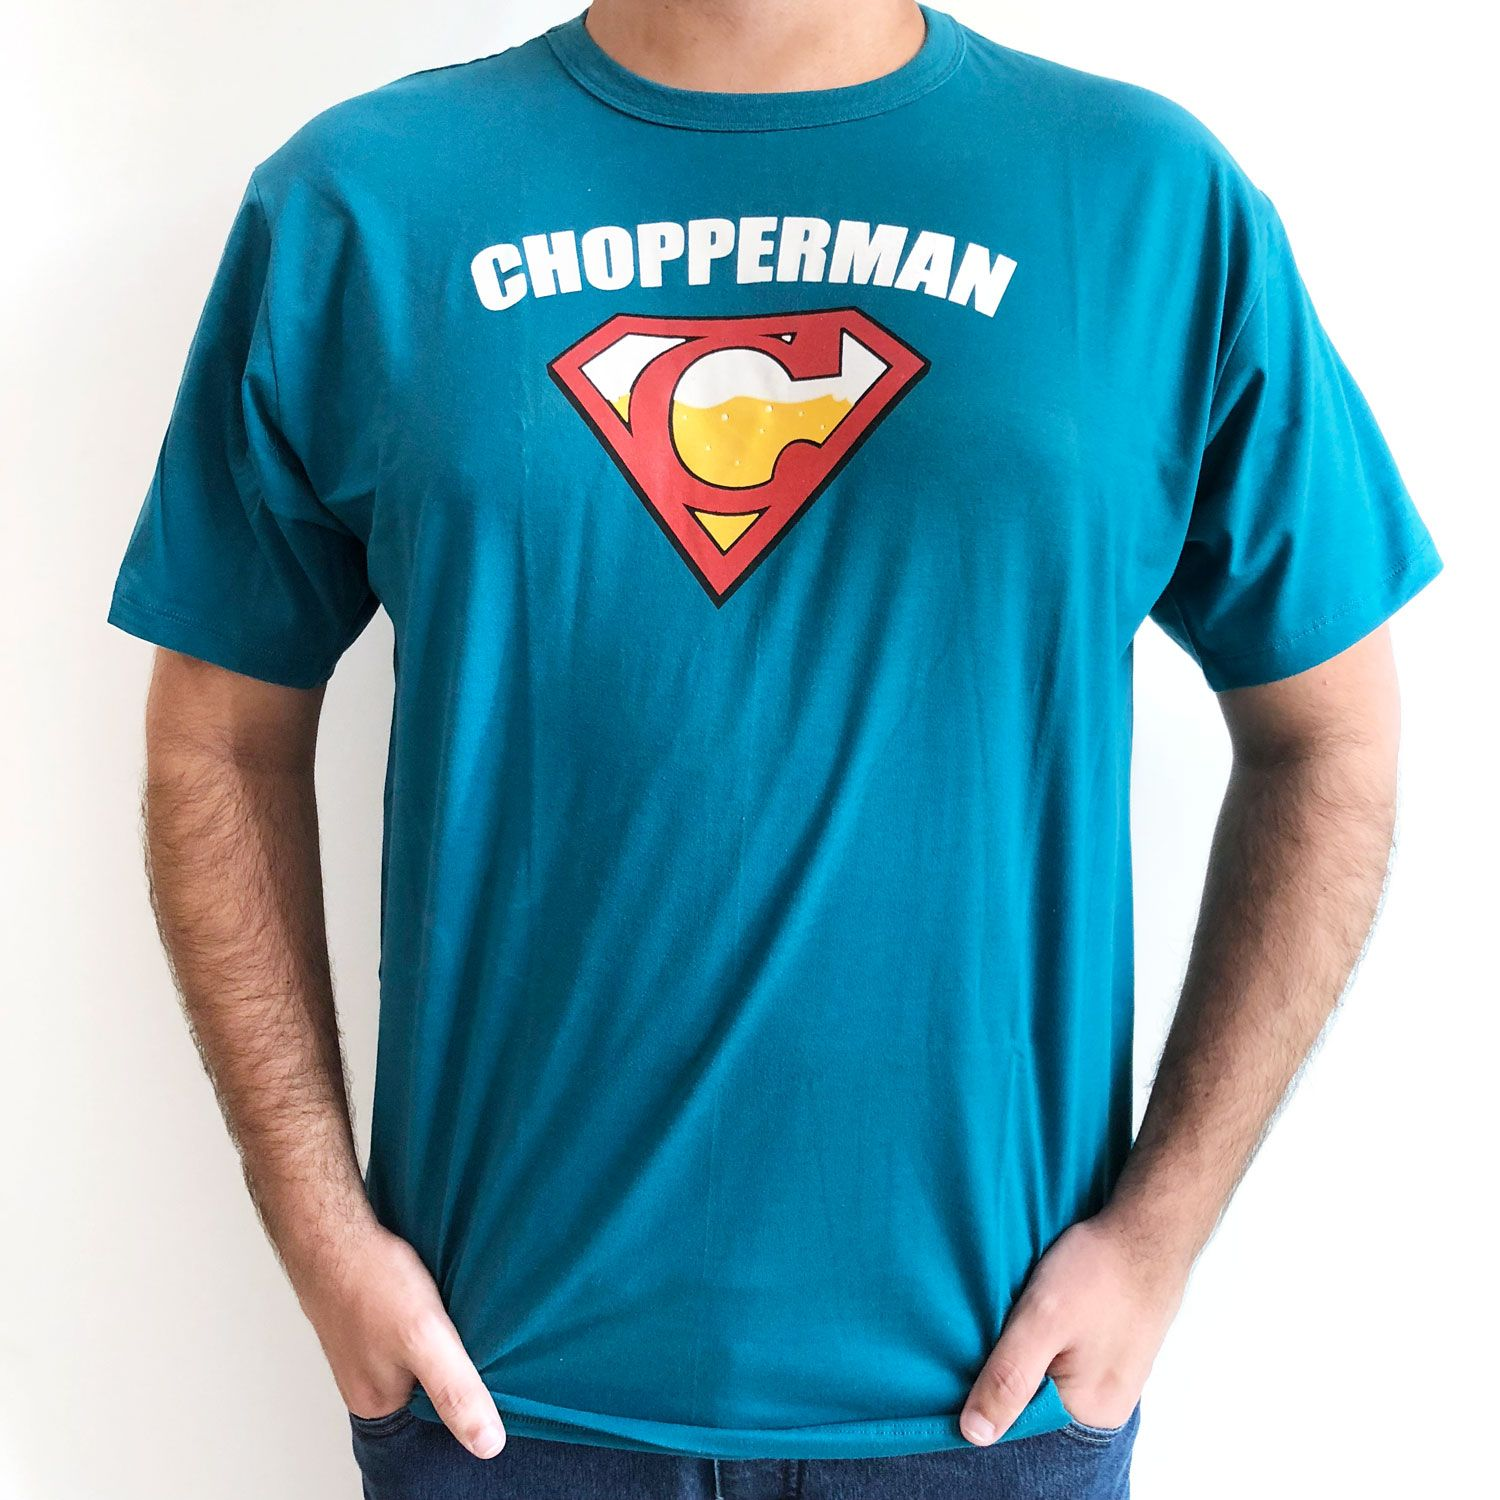 Chopperman T-shirt